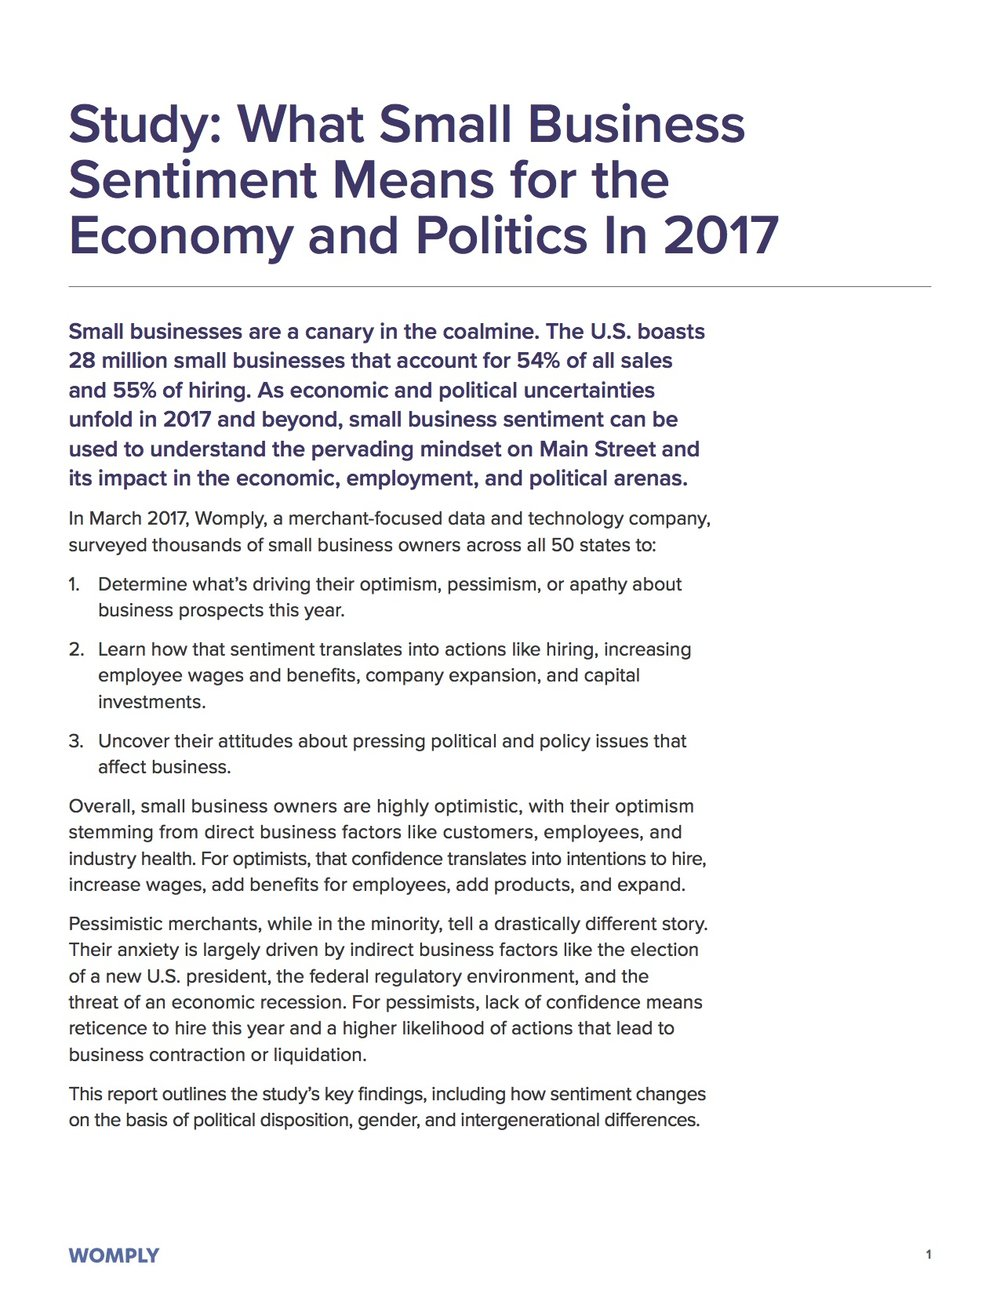 small-business-sentiment-study-2017